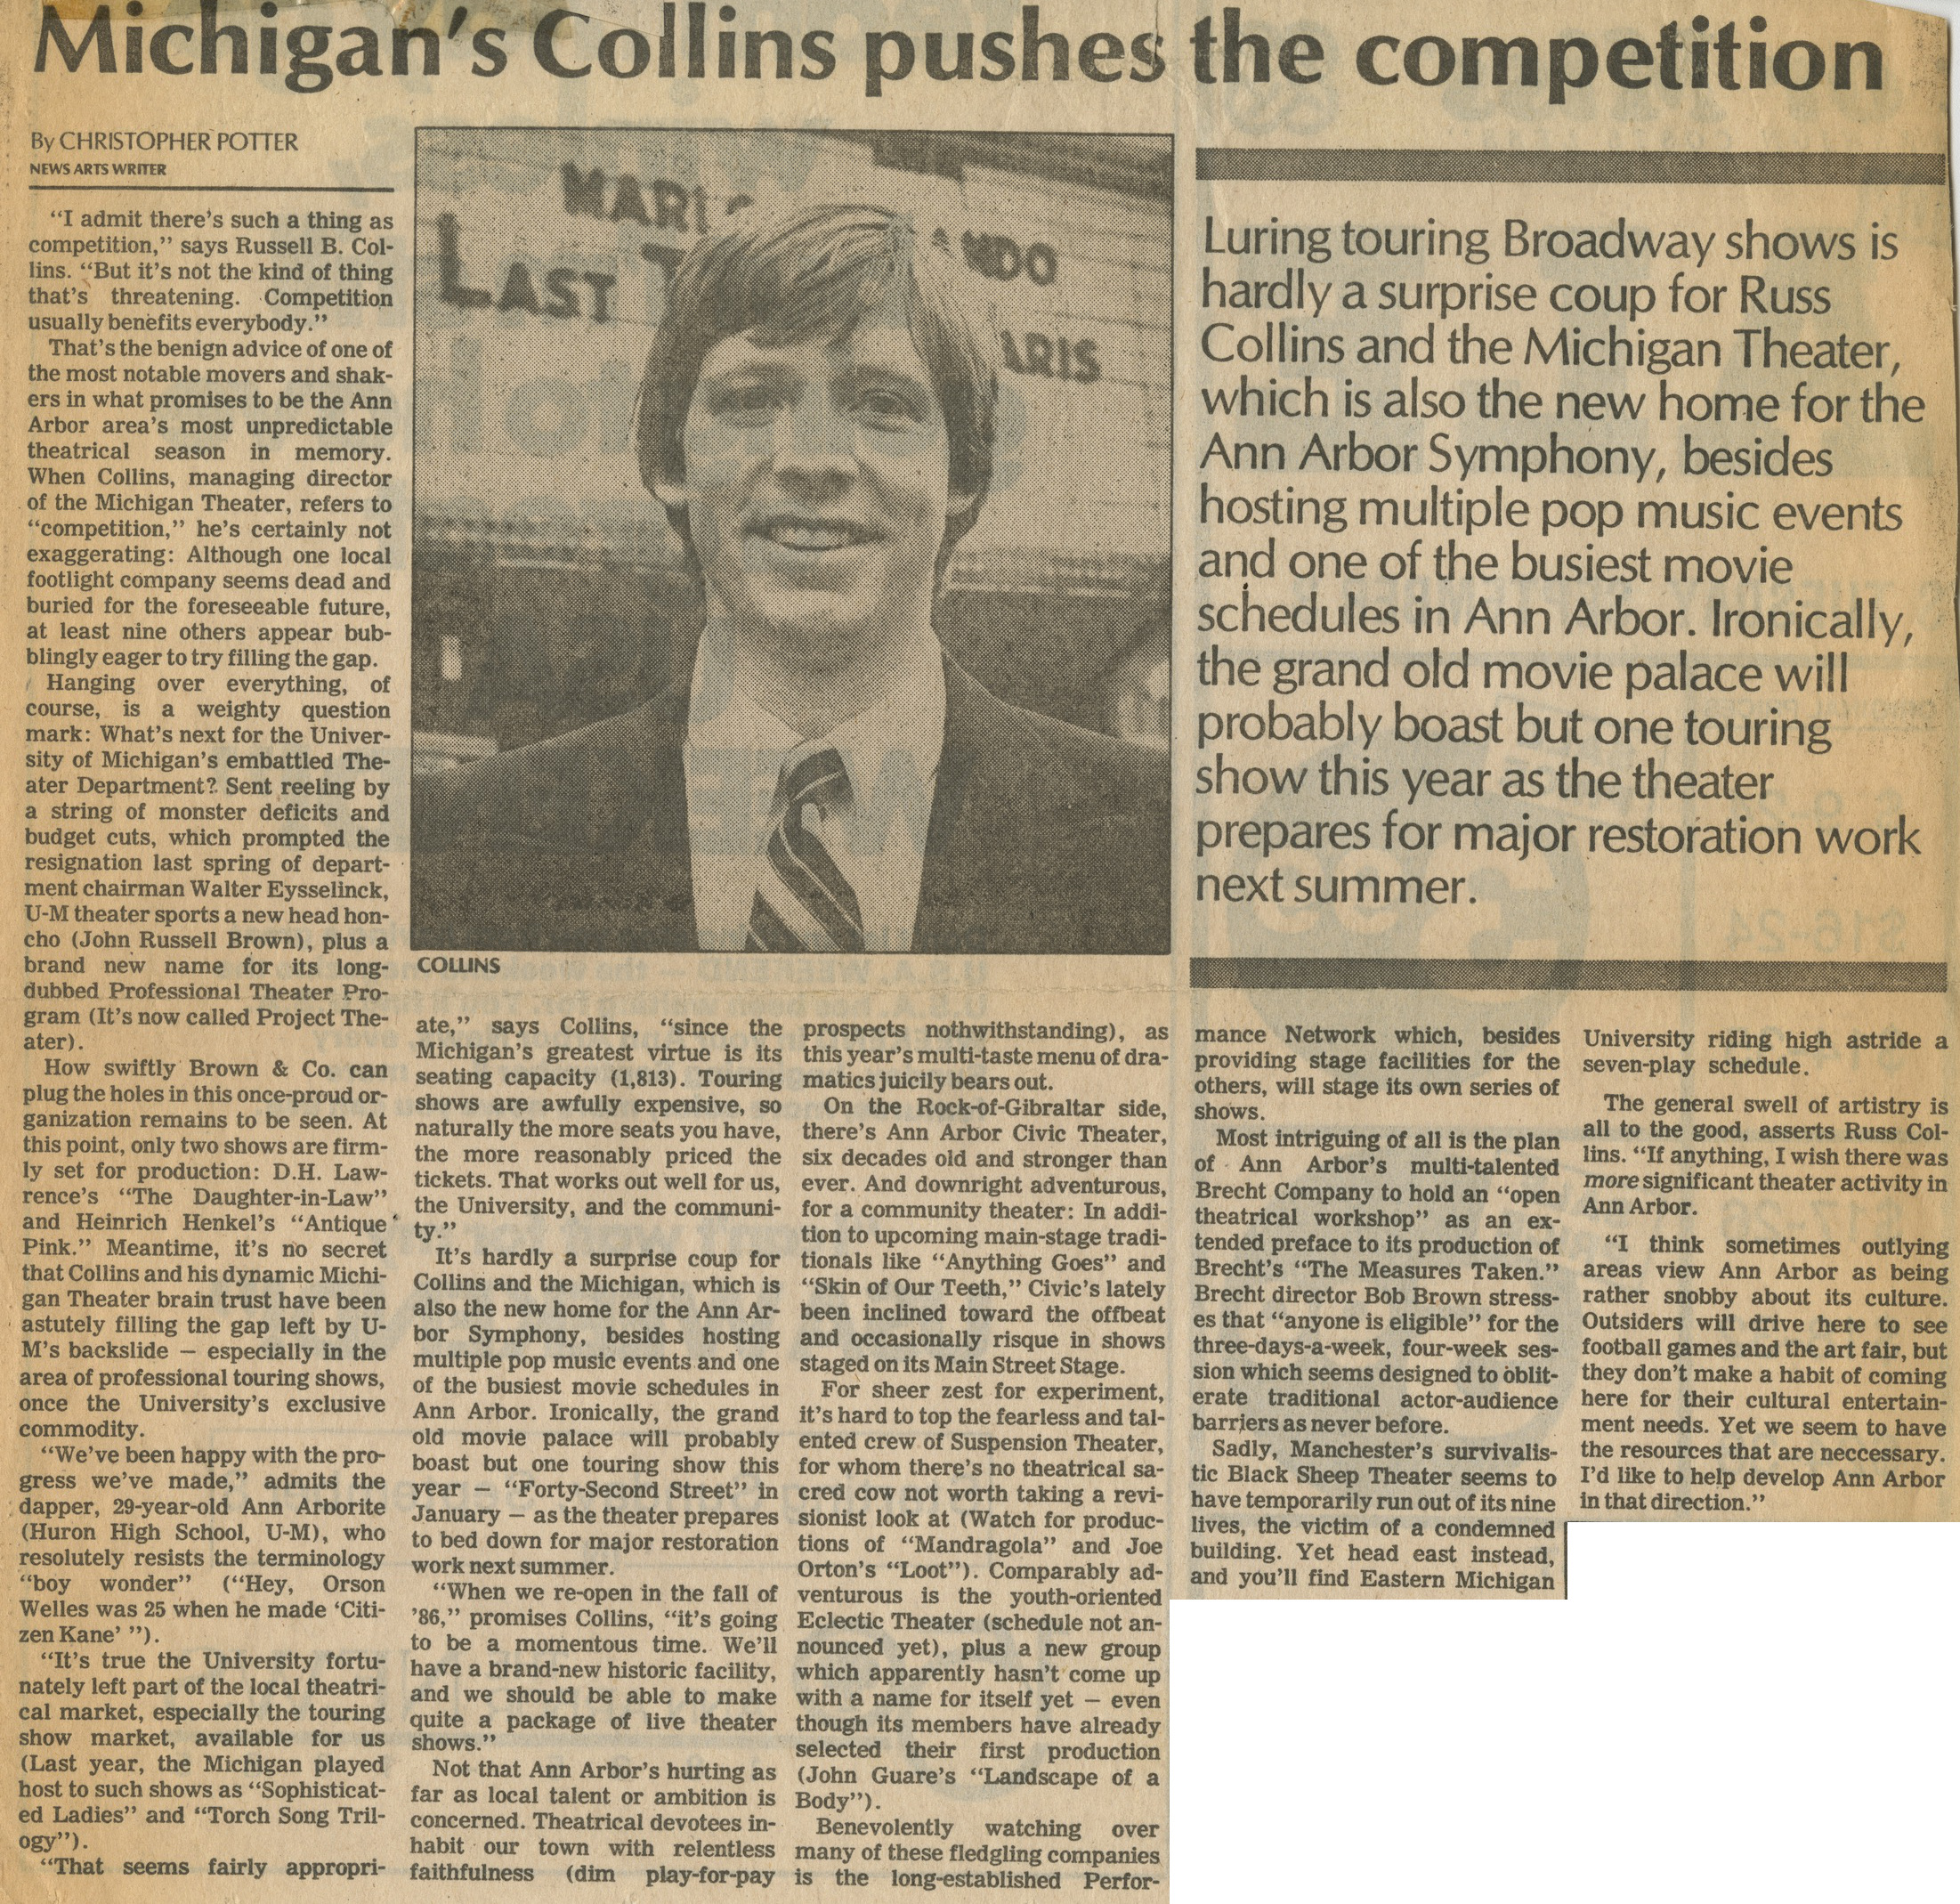 Michigan's Collins pushes the competition image